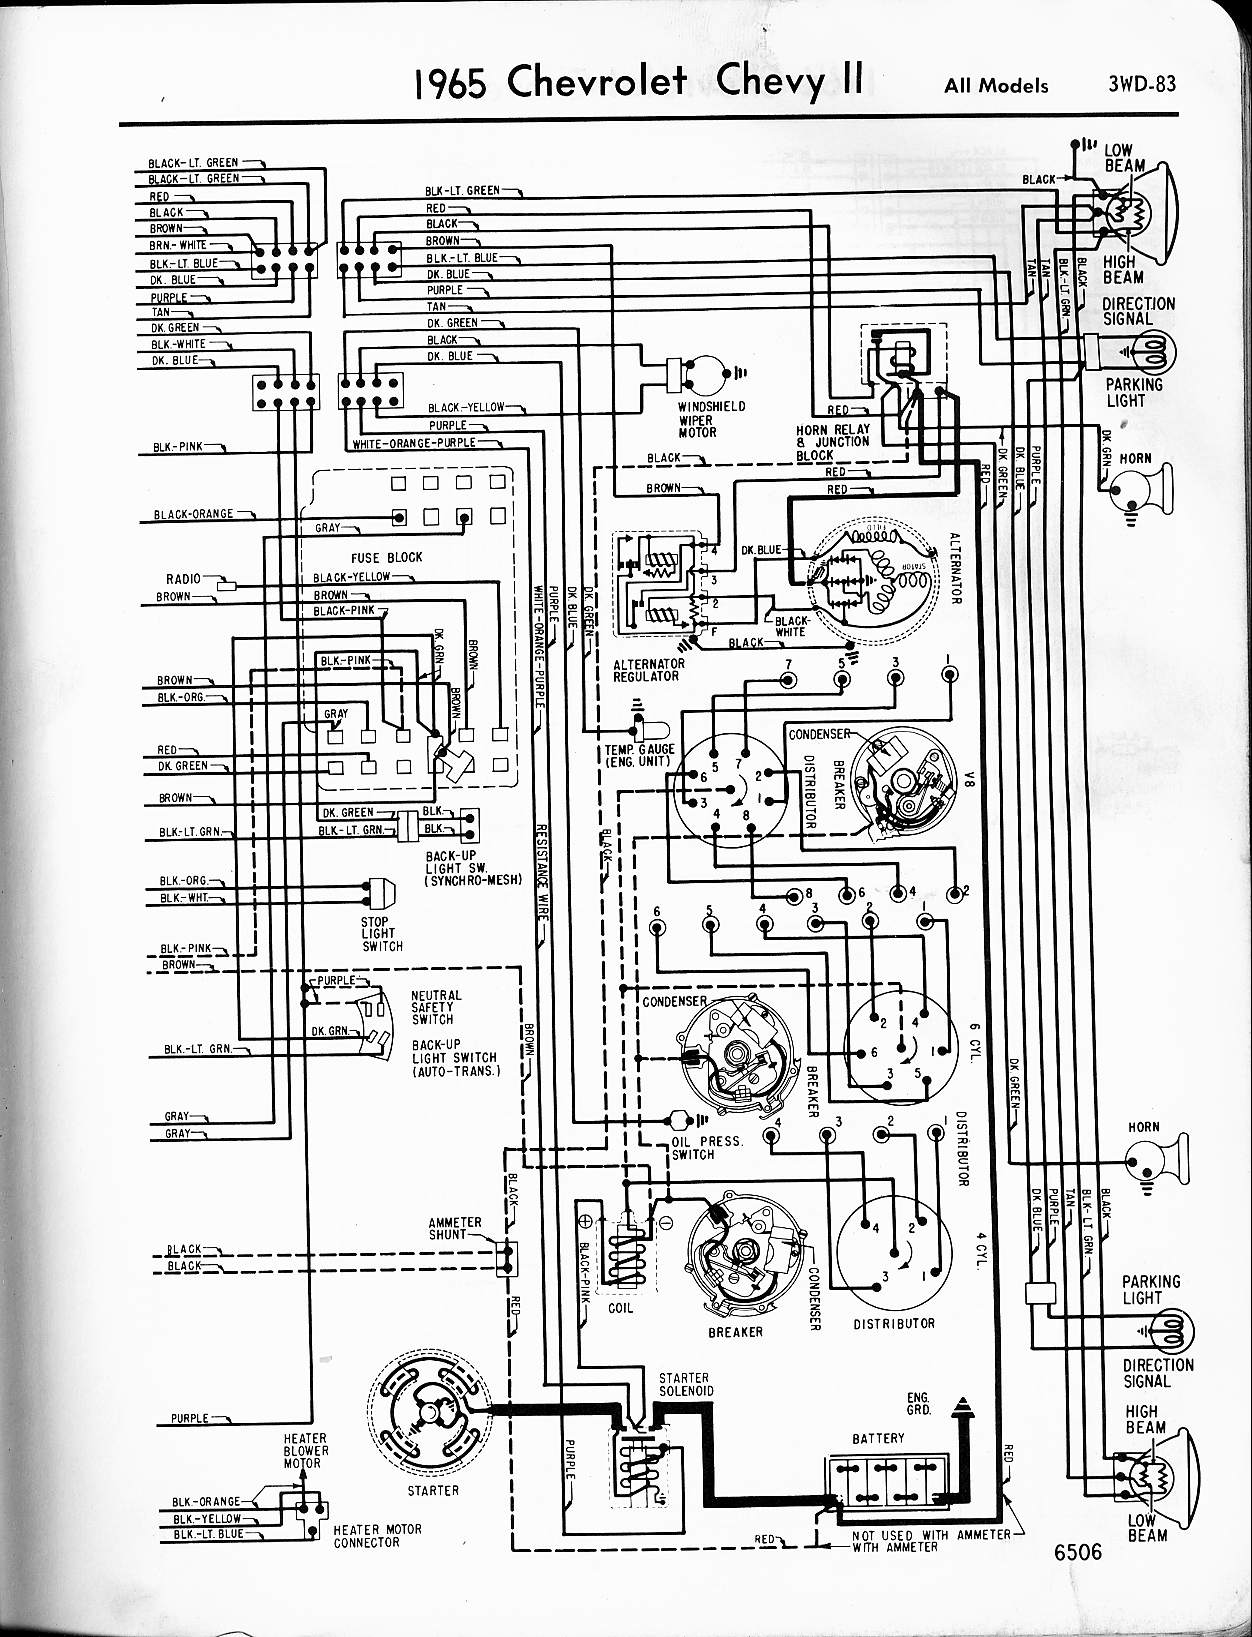 1967 Chevy Truck Ignition Switch Wiring Diagram Opinions About 1982 Camaro Charging System 71 Chevrolet Wire Schematics Rh Mychampagnedaze Com Chevelle Transmission